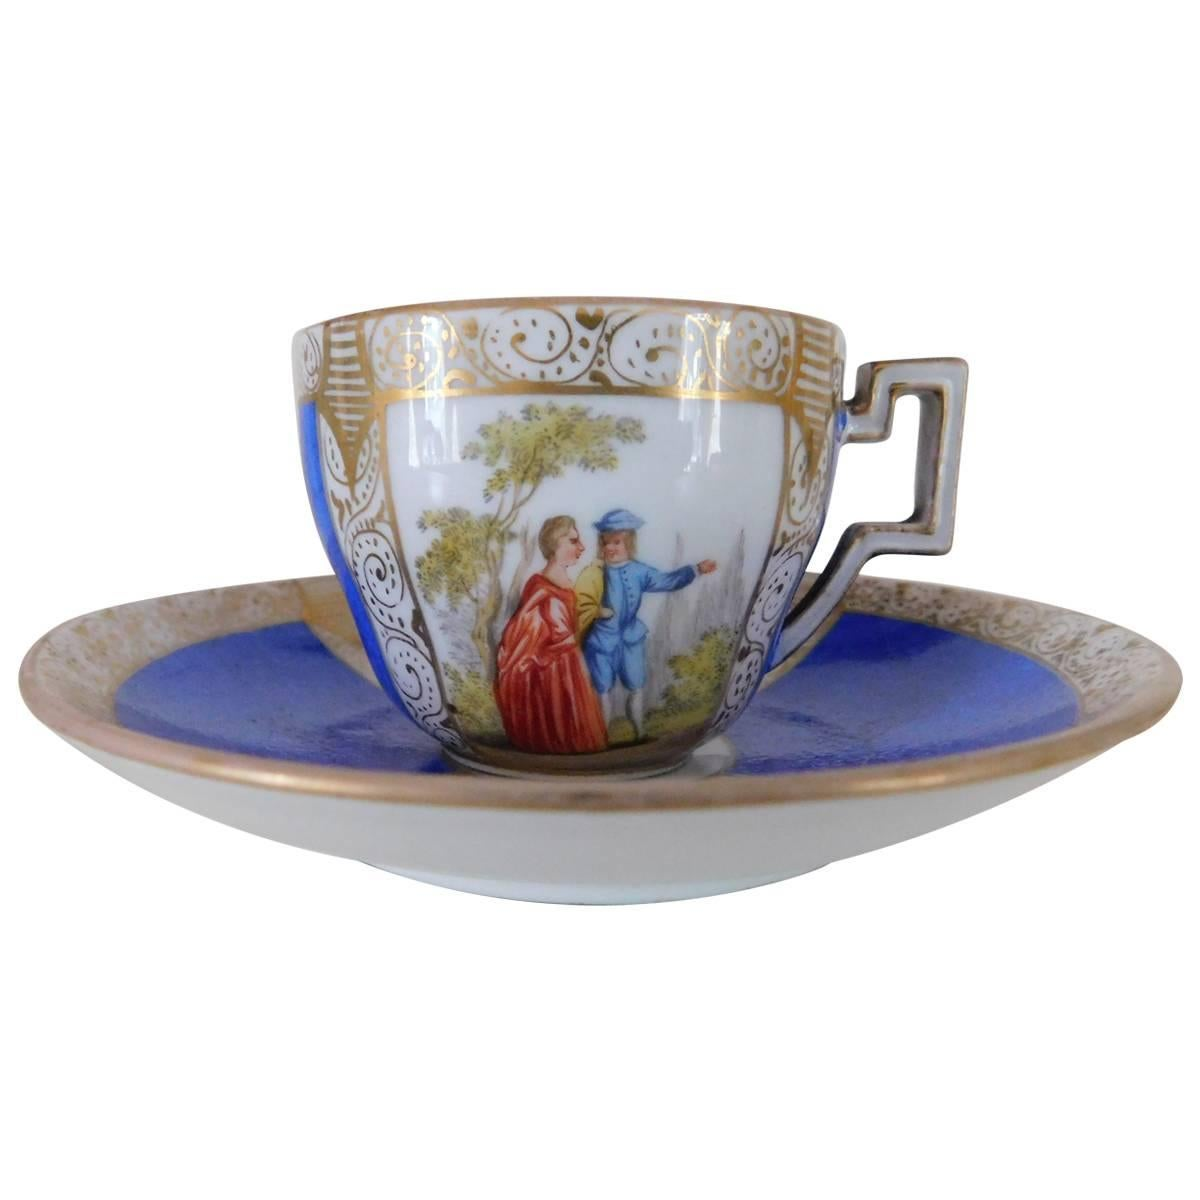 19th Century Meissen Porcelain Cup and Saucer